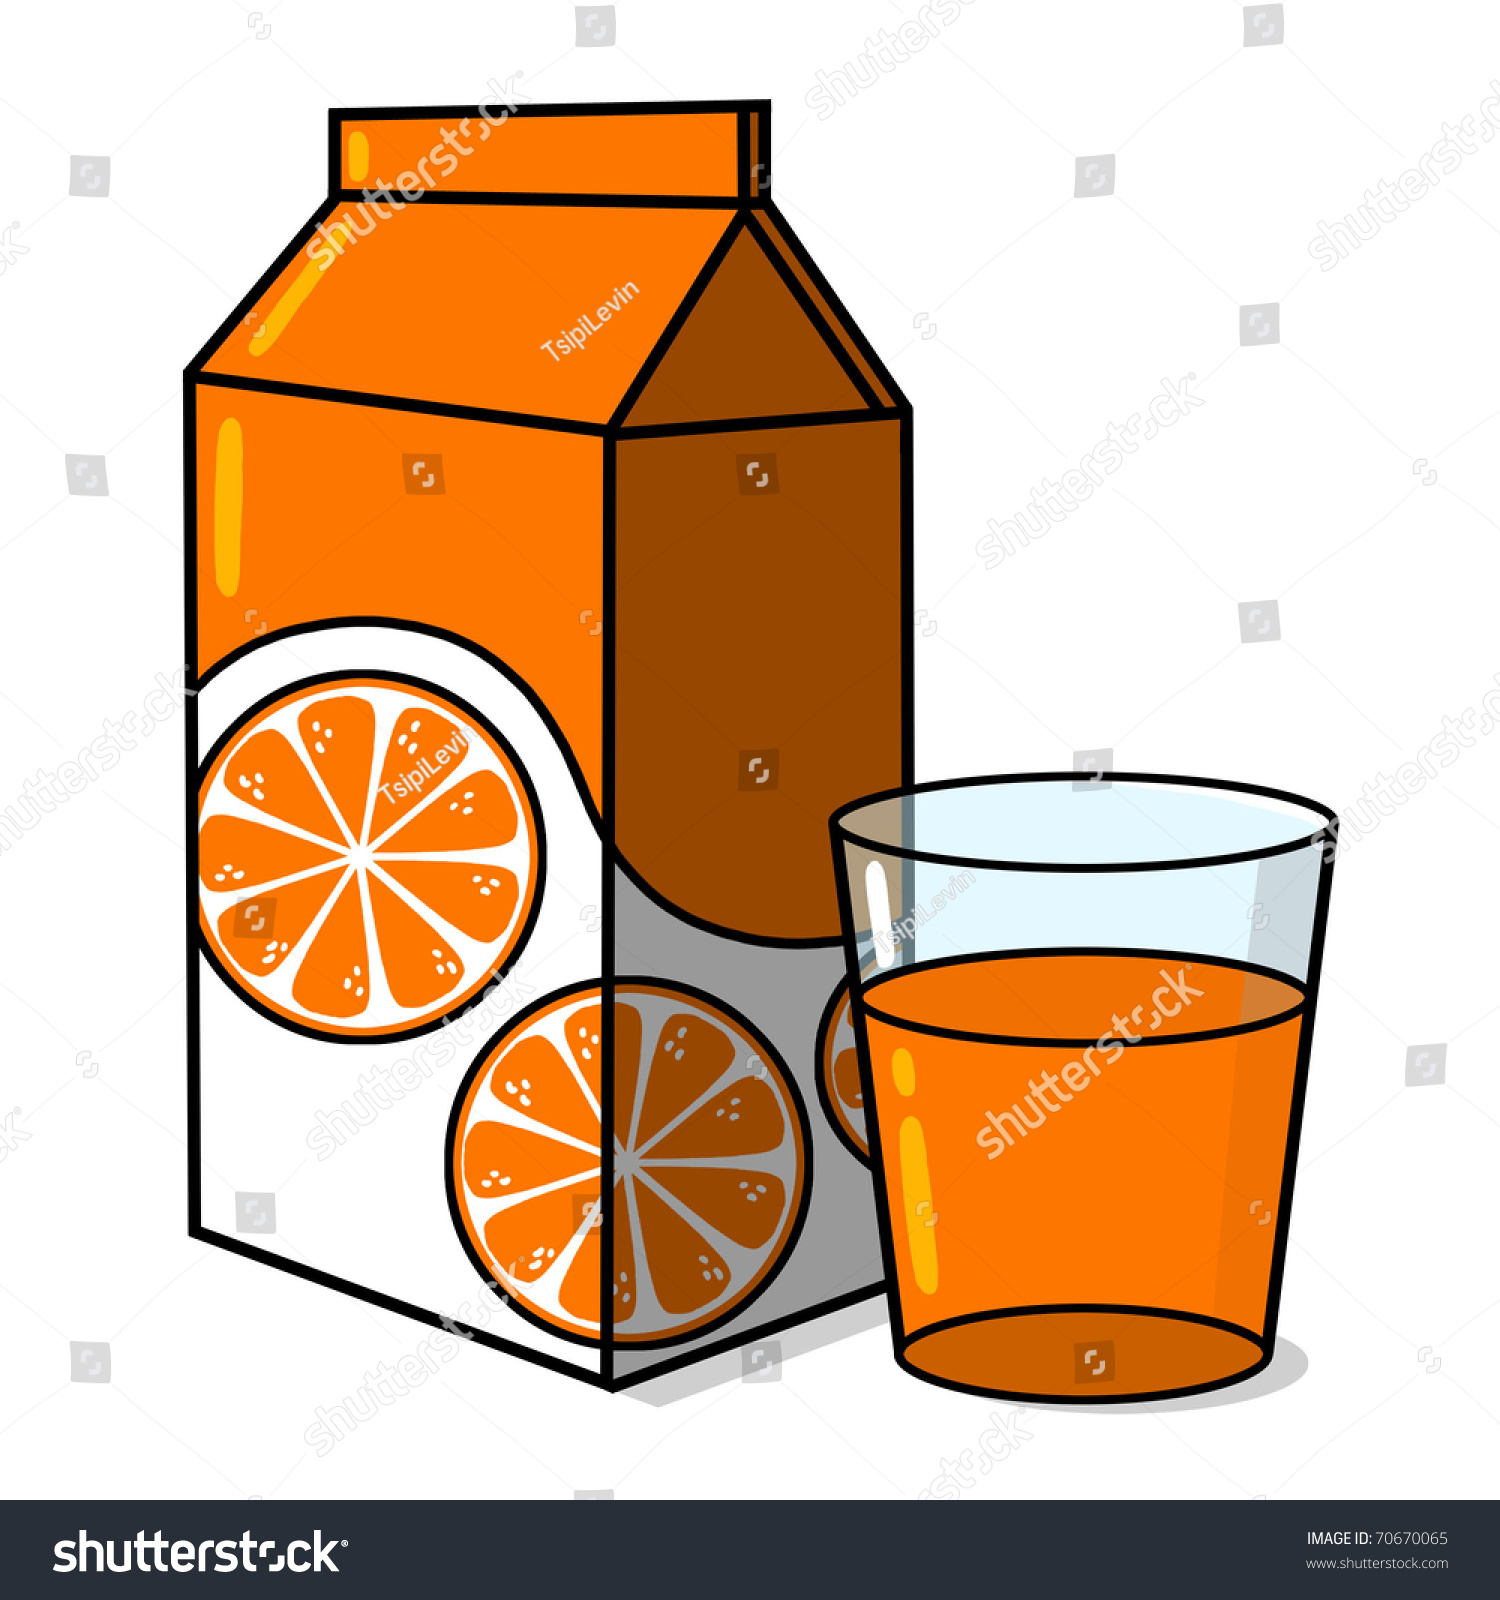 orange juice carton glass orange juice stock illustration